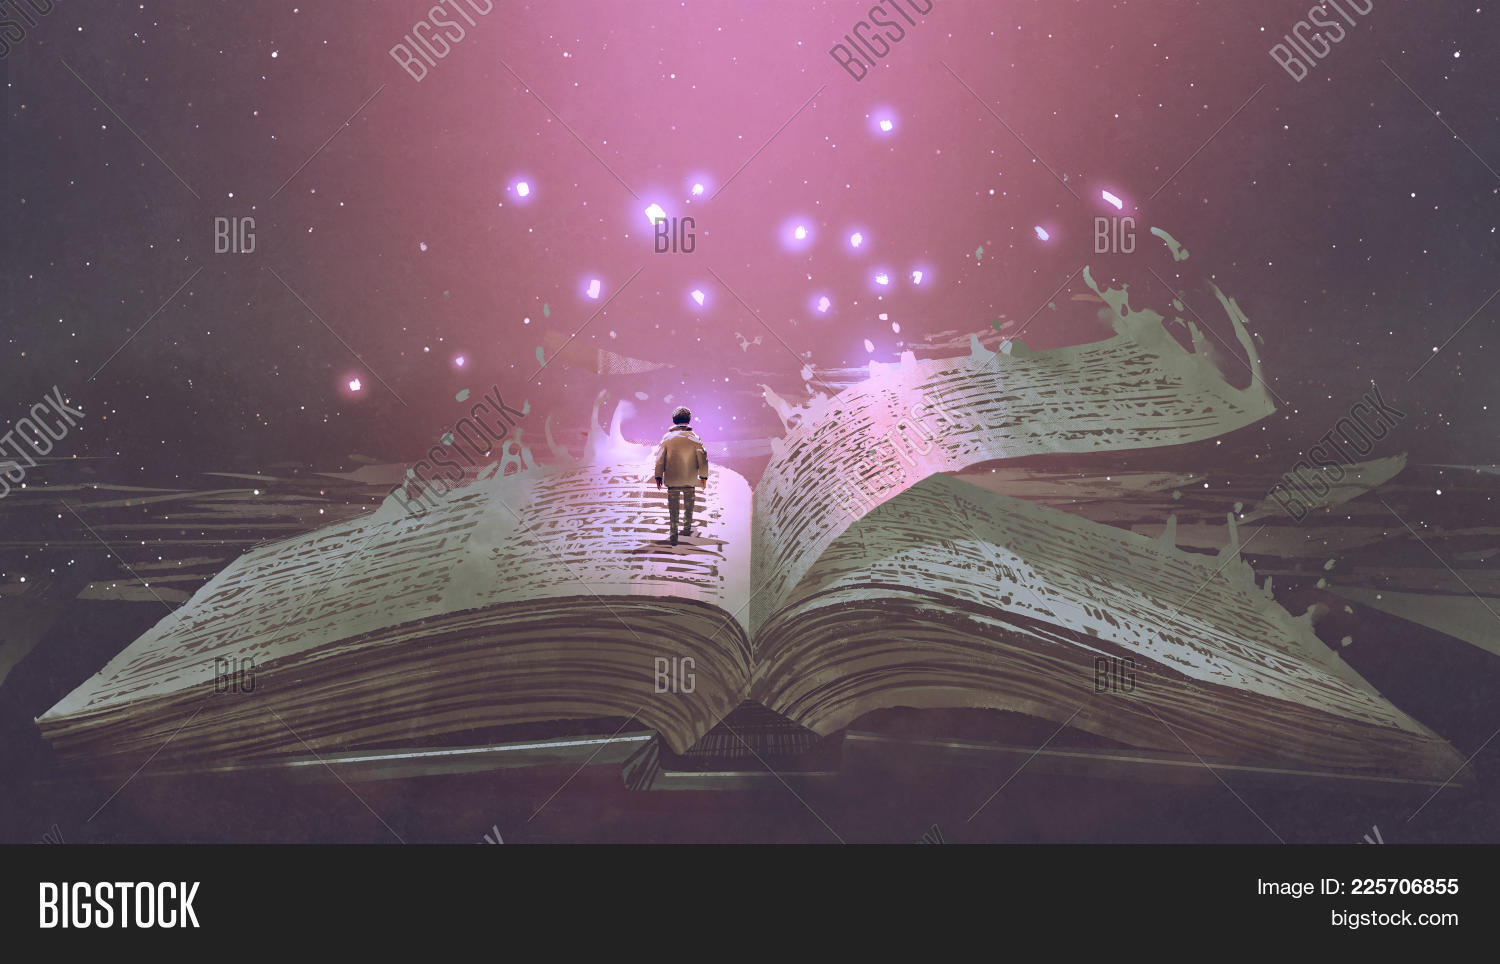 acrylic,art,artistic,artwork,big,book,boy,childhood,fantasy,giant,illustration,imagination,kid,knowledge,light,old,open,painting,papers,pink,read,school,story,surreal